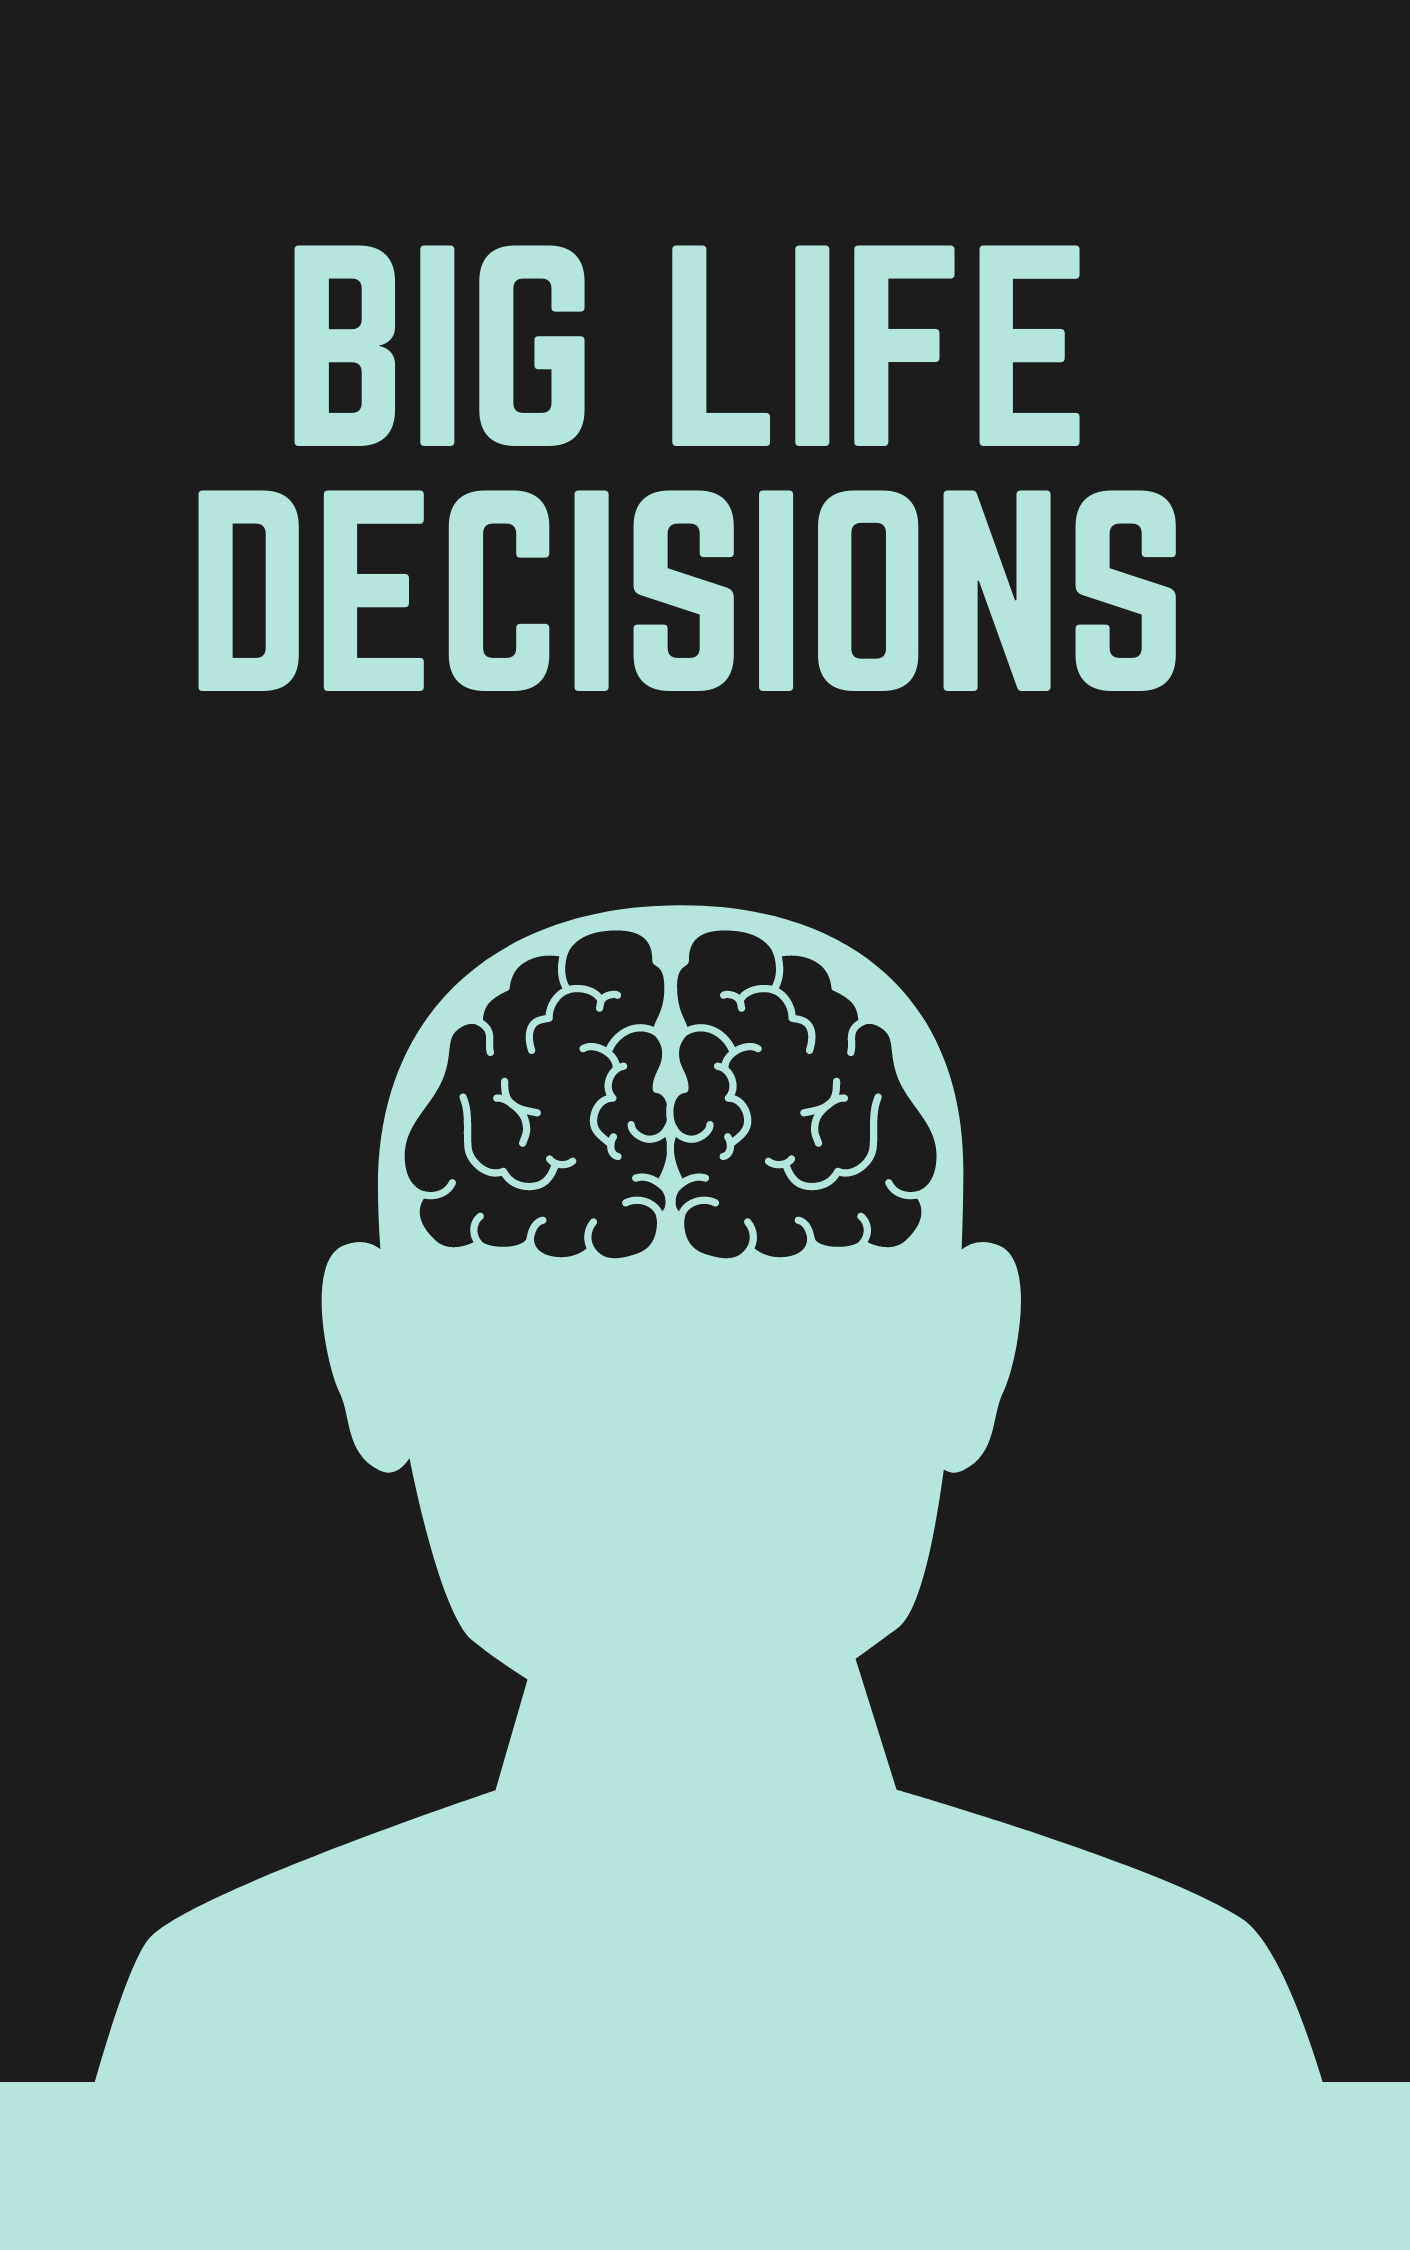 A Guide To Making Your BIG LIFE DECISIONS